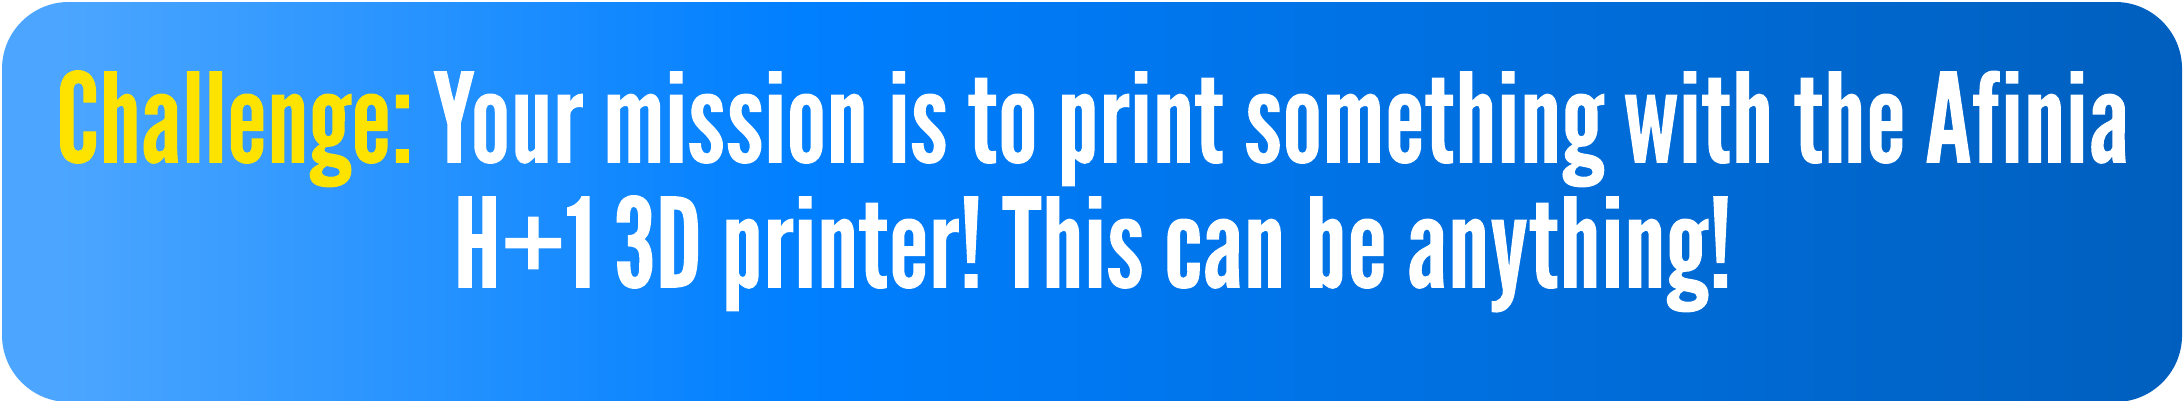 Challenge: Your mission is to print something with the Afinia H+1 3D printer! This can be anything!